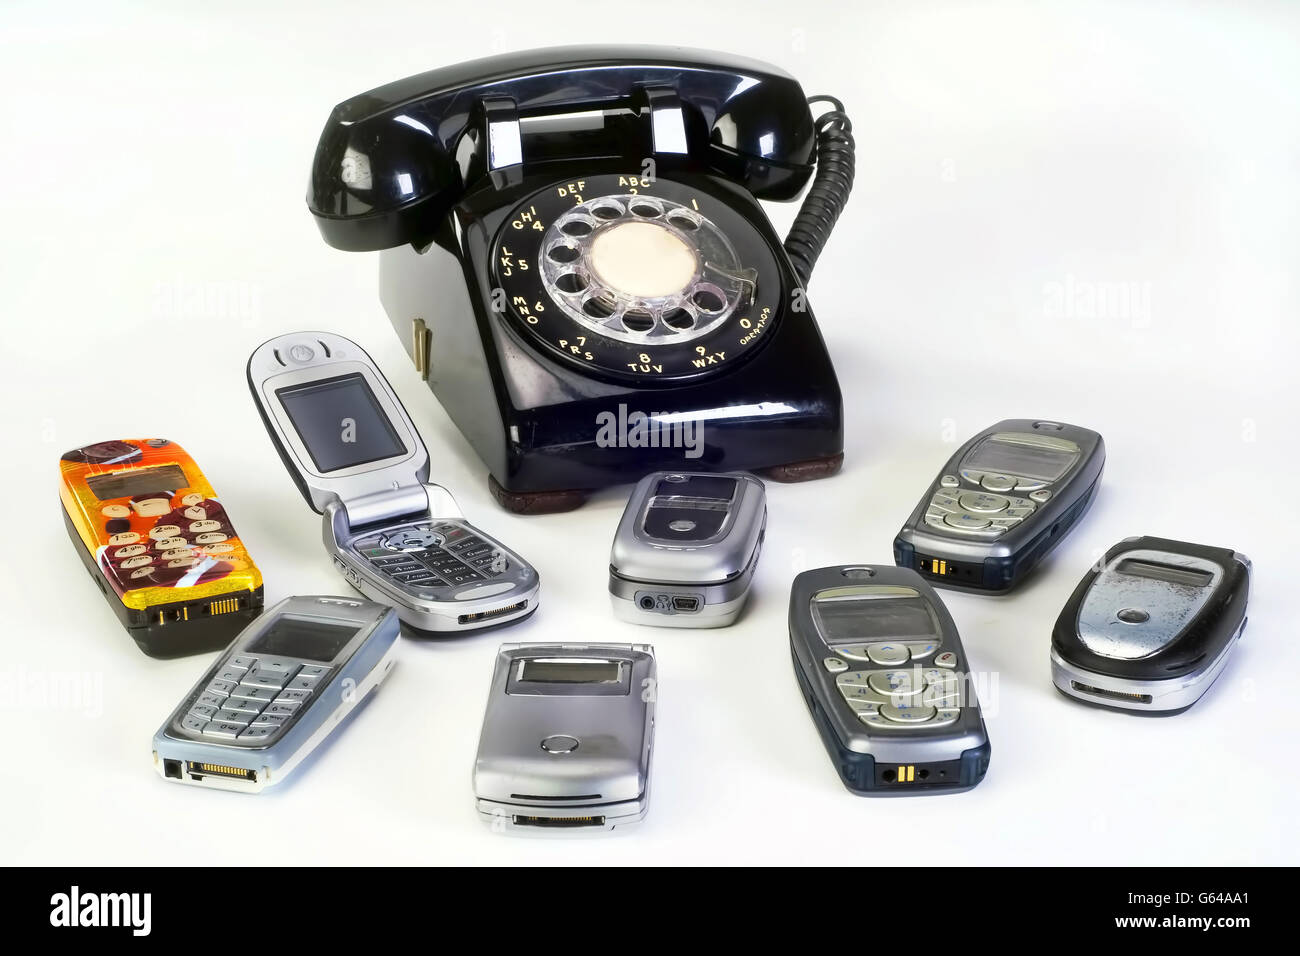 Old working cell phones and black rotary telephone. - Stock Image